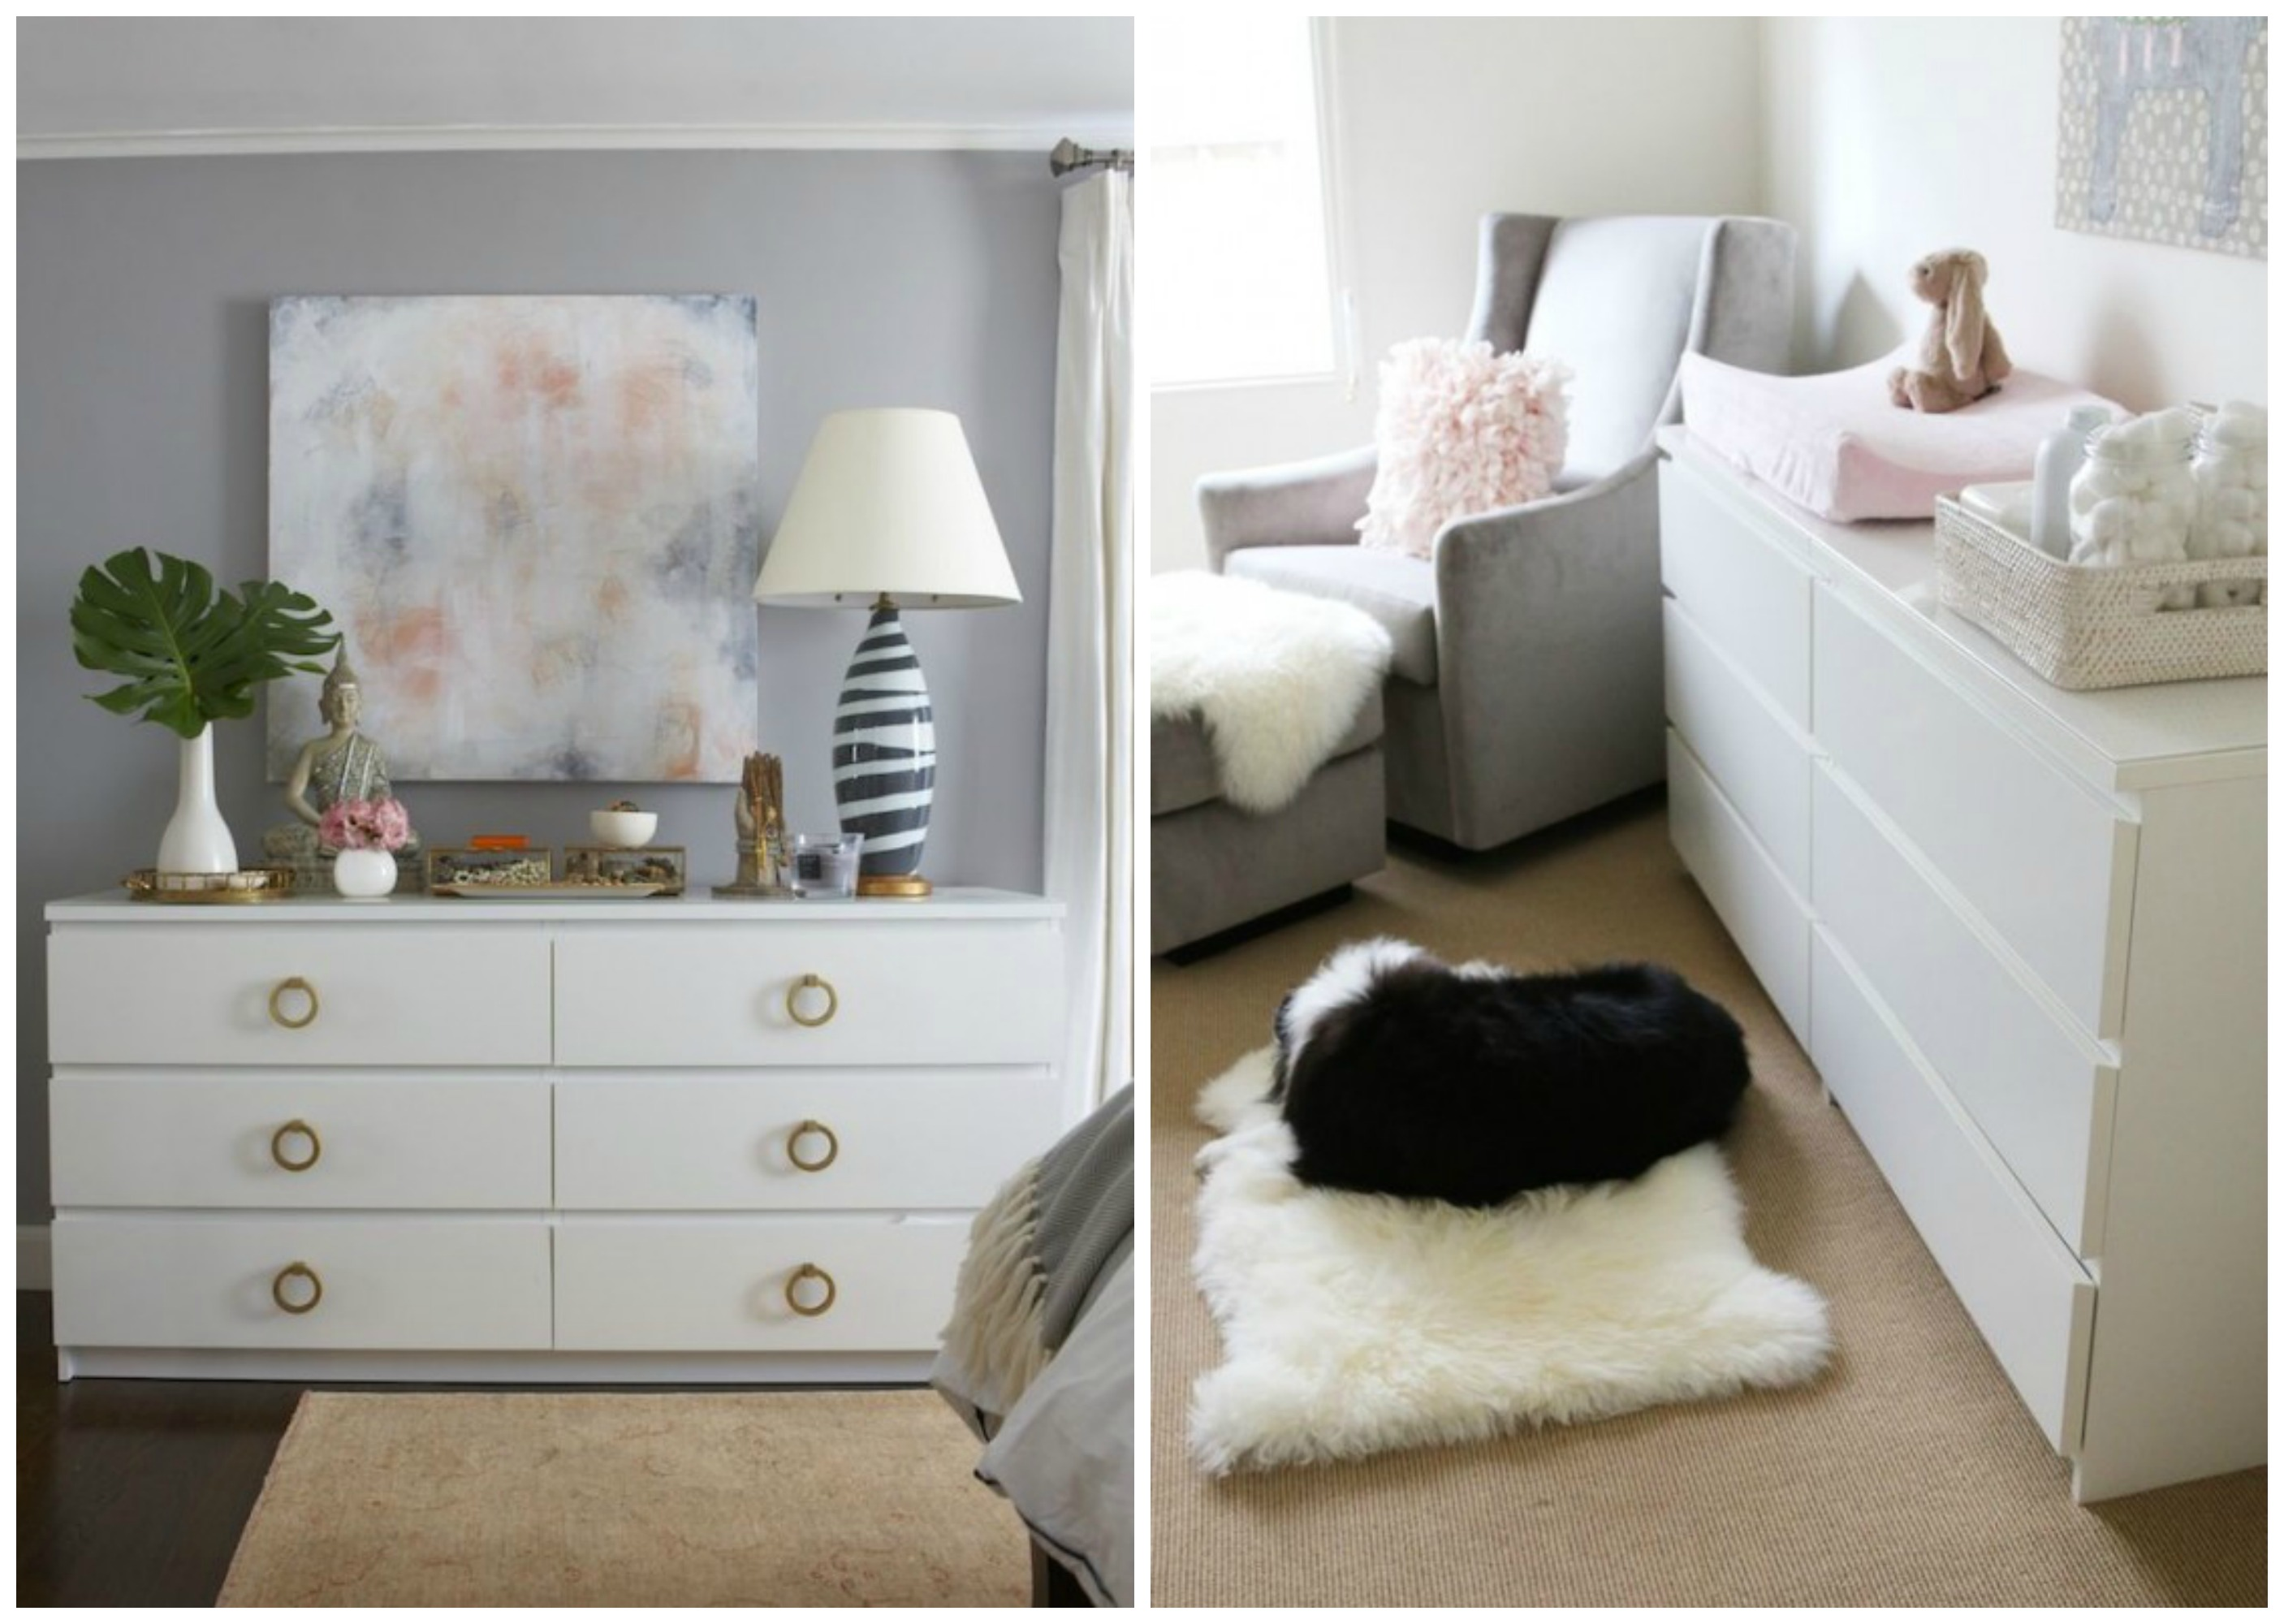 Ikea Malm 6 Drawer Dresser Ikea Trip Planning And Inspiration | Round Two - Rachel Emily